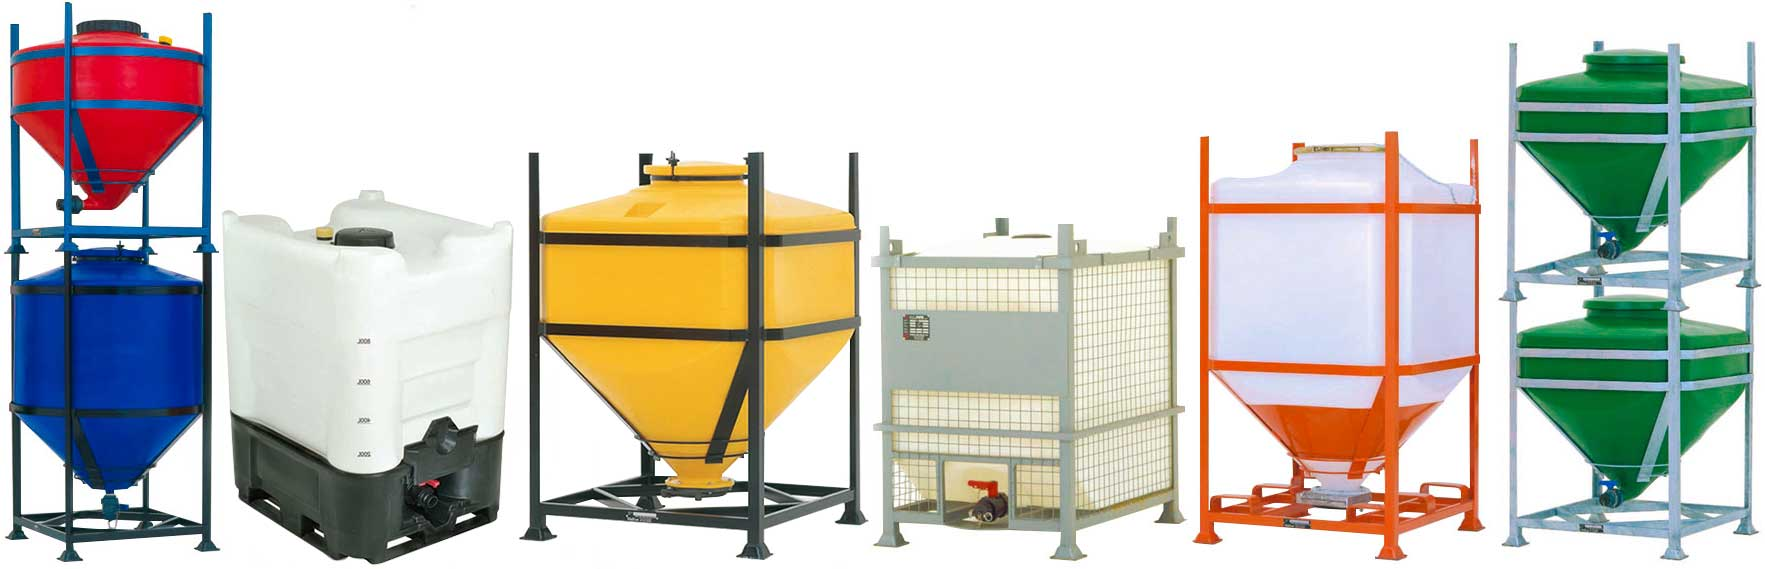 Industrial-storage-containers-IBC